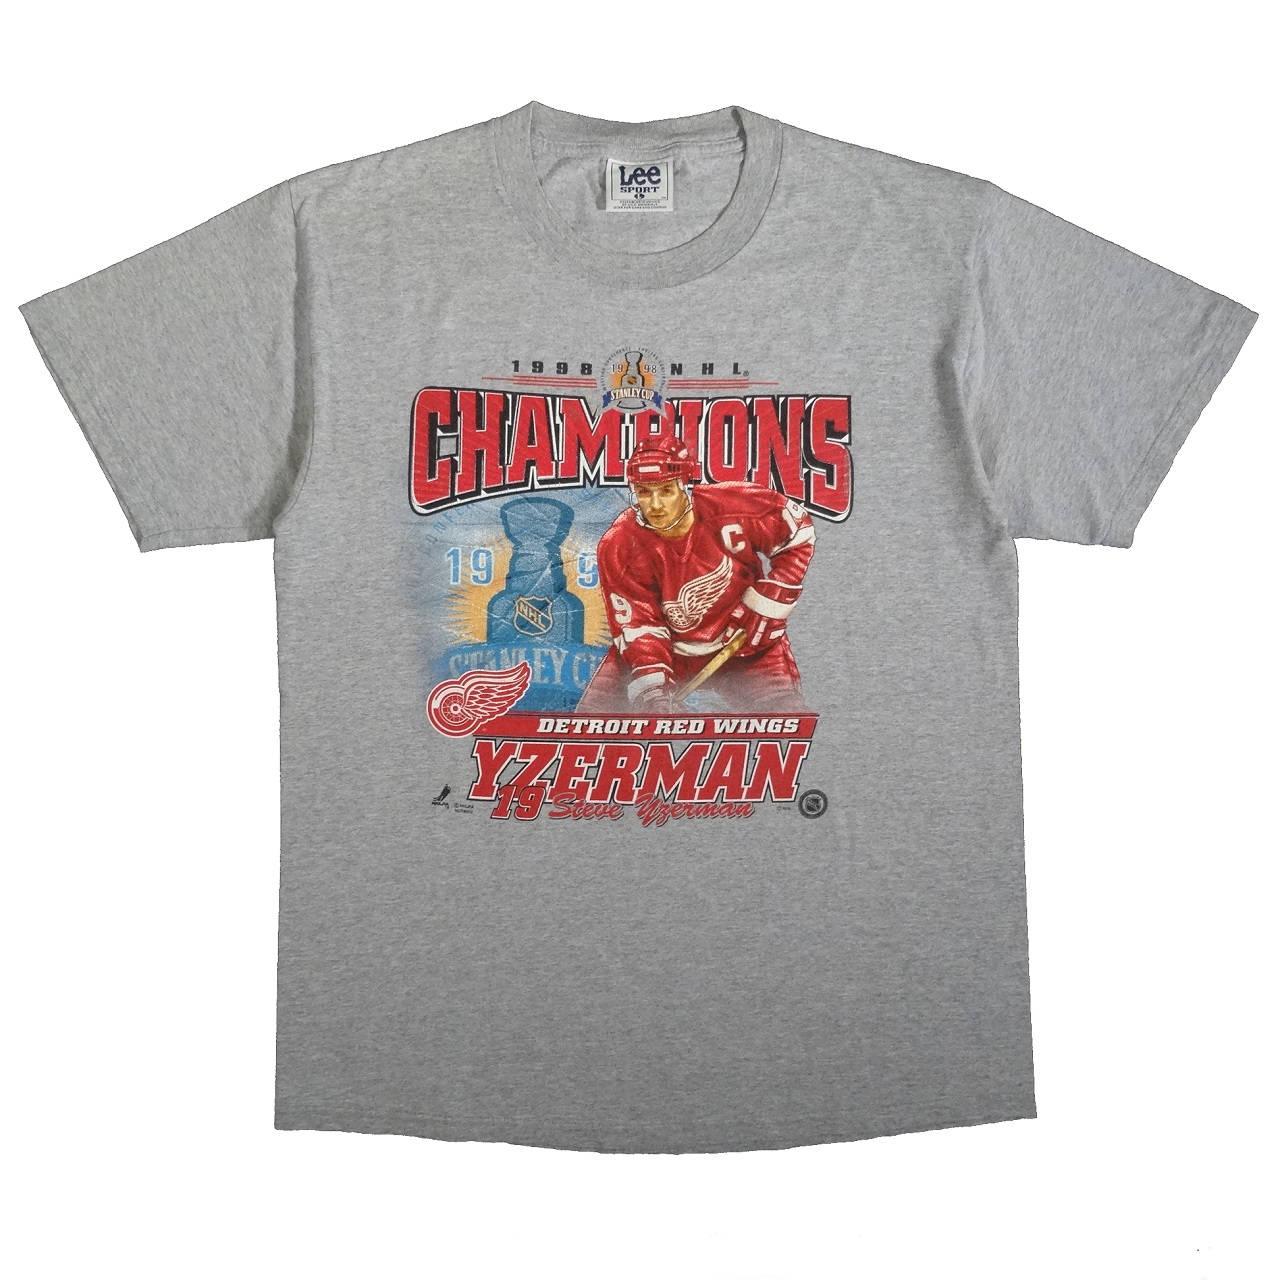 Detroit Red Wings Yzerman 1998 NHL Champions Vintage T Shirt Front